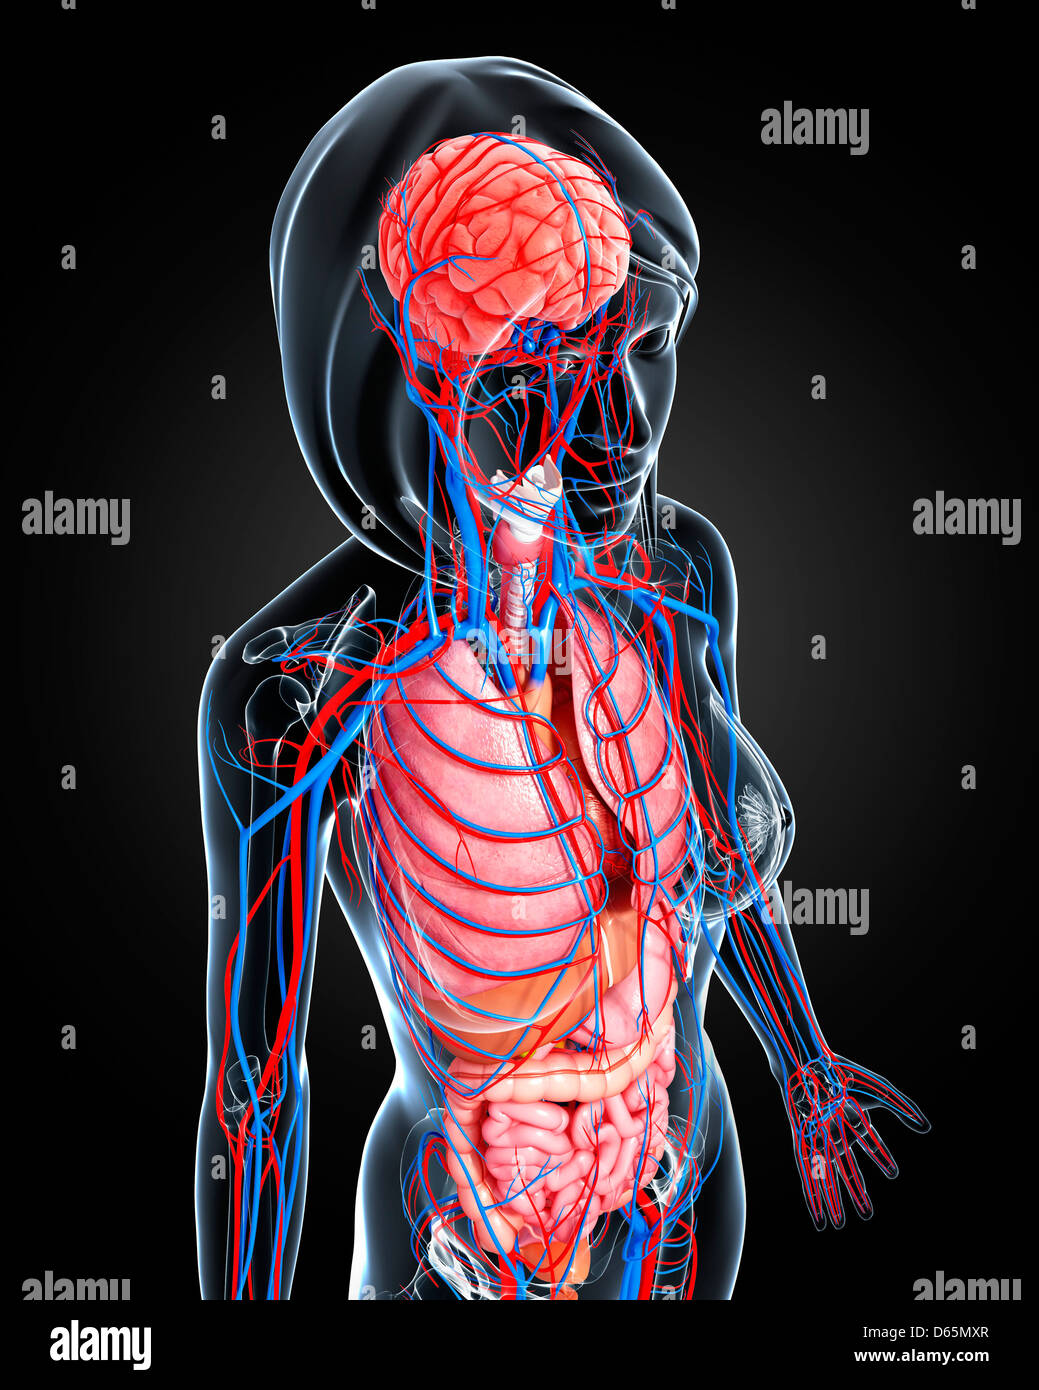 Intestines Blood Stockfotos & Intestines Blood Bilder - Alamy